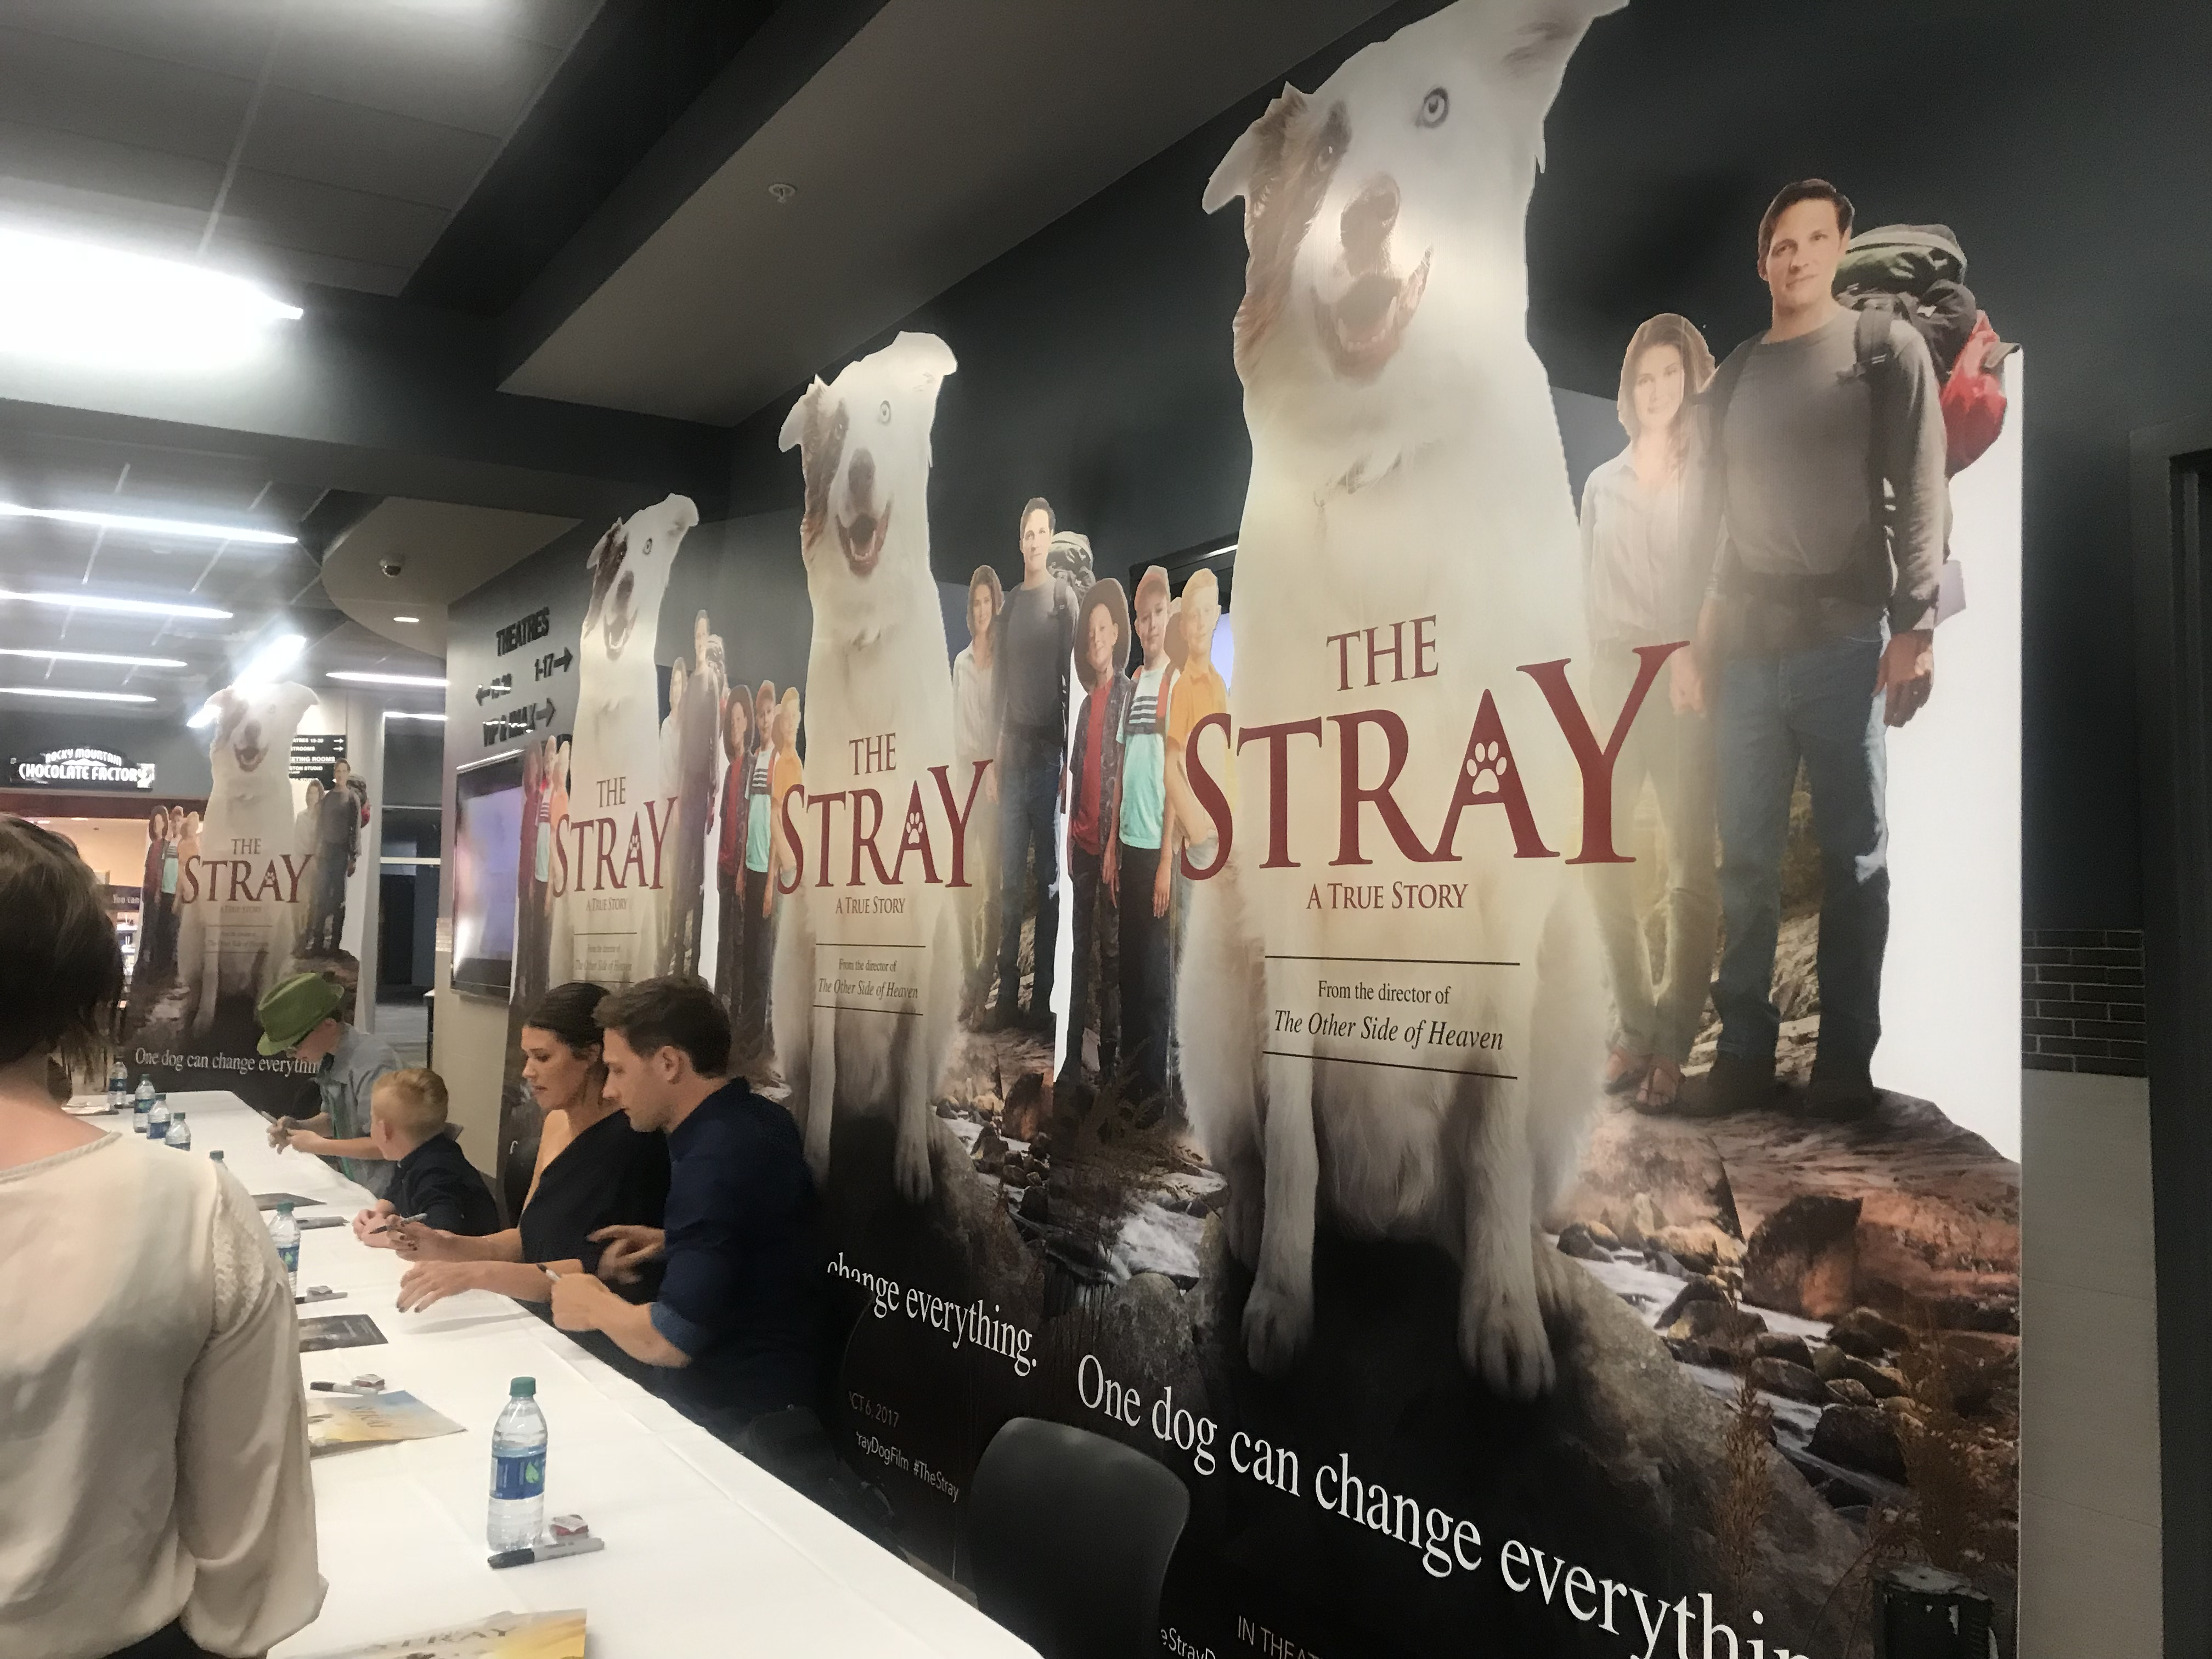 The Stray is in Theaters Today